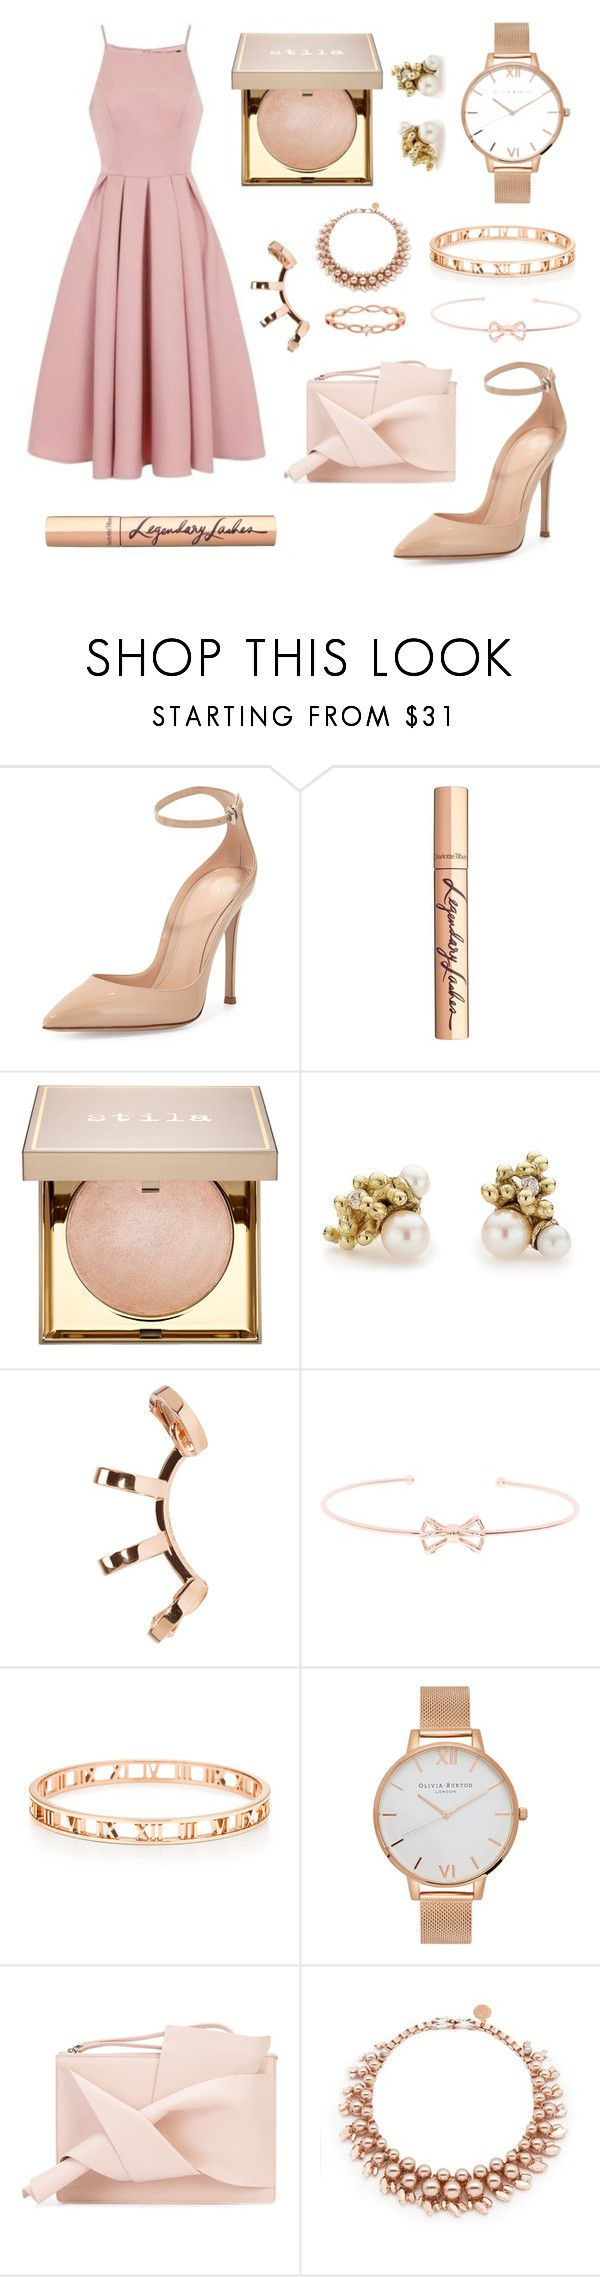 """Theme: Prom Night"" by anna-james-21 ❤ liked on Polyvore featuring Chi Chi, Gianvito Rossi, Charlotte Tilbury, Stila, Ruth Tomlinson, Repossi, Ted Baker, Olivia Burton, N°21 and Ellen Conde"